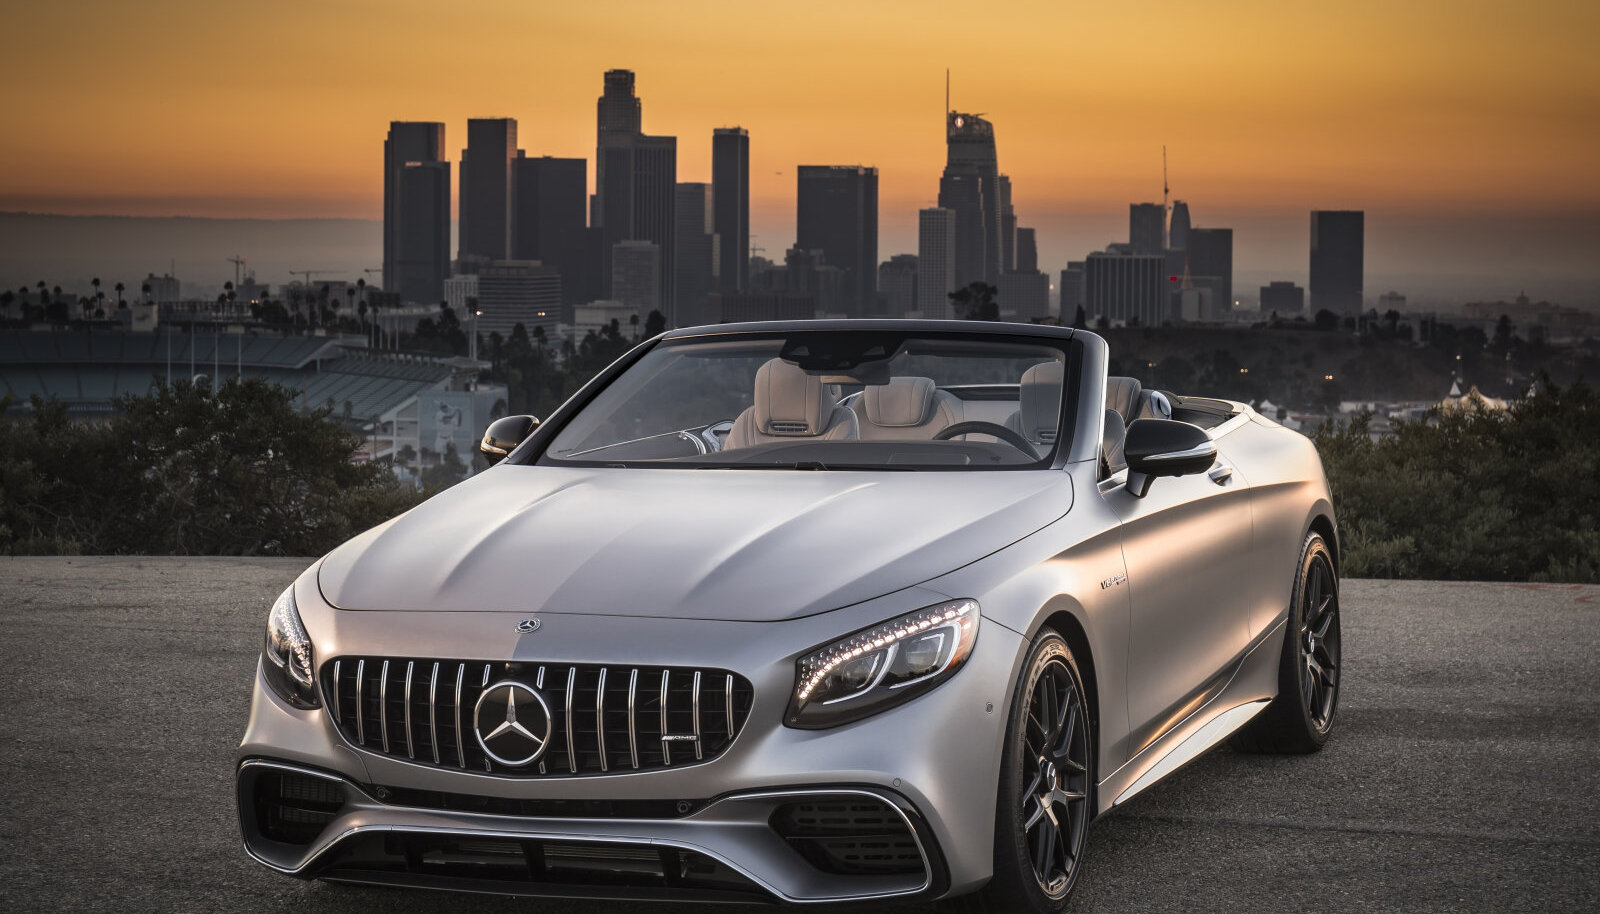 Mercedes-AMG S63 4Matic+ kabriolettversioon